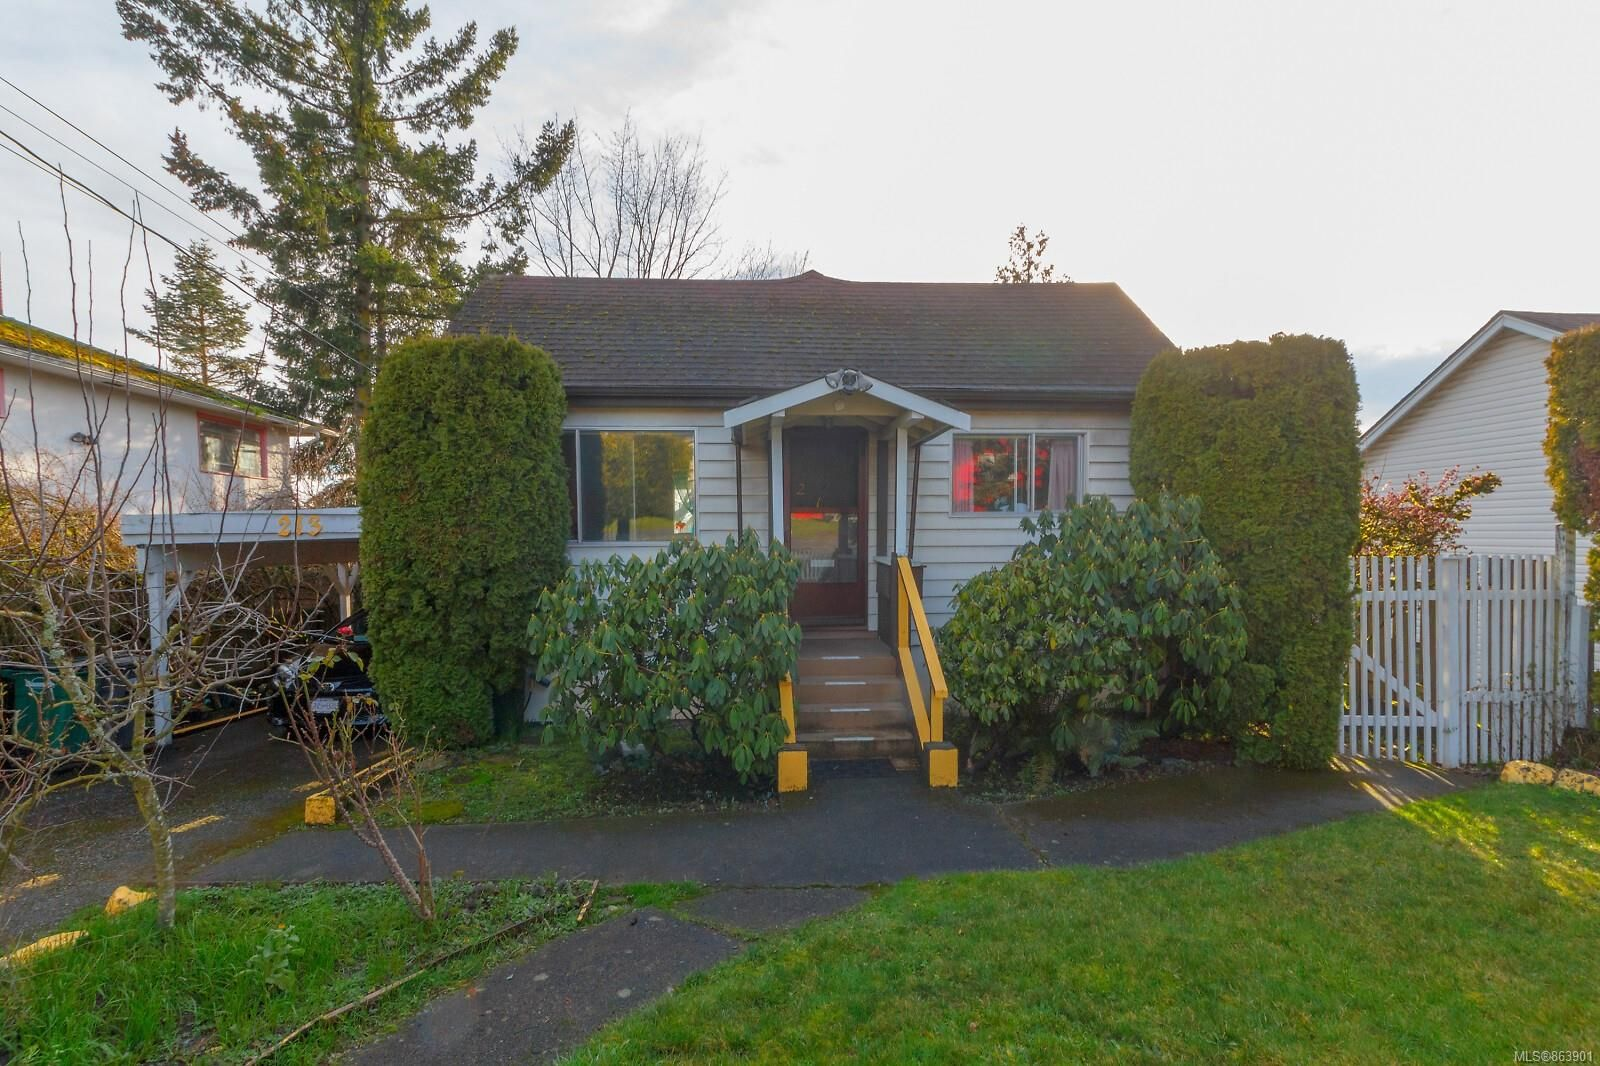 Main Photo: 213 Crease Ave in : SW Tillicum House for sale (Saanich West)  : MLS®# 863901